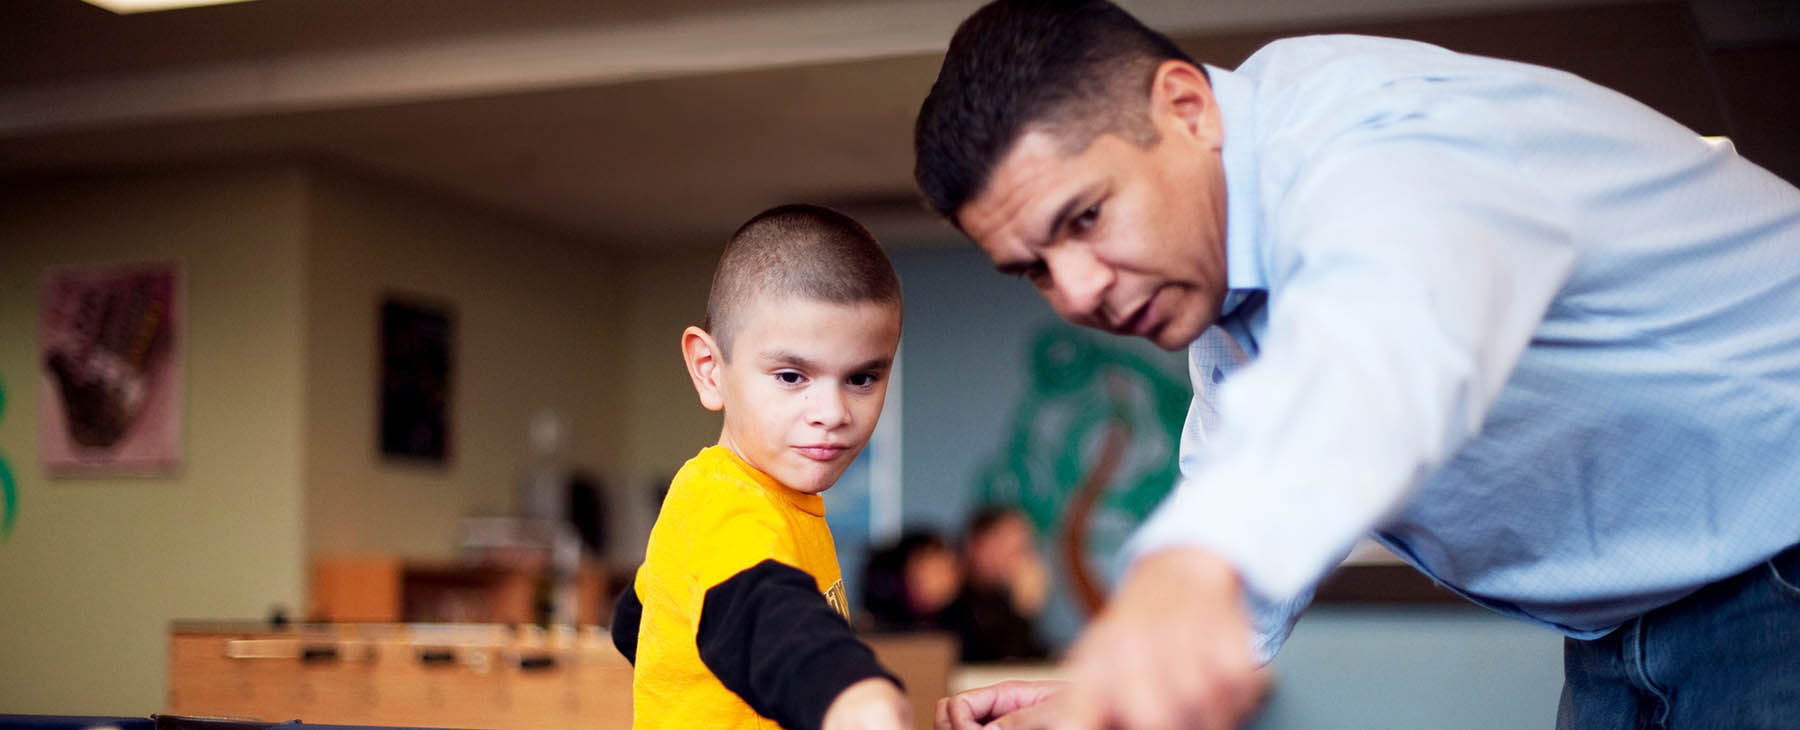 big brothers big sister For more than 100 years nationally and 55 locally, big brothers big sisters has operated under the belief that inherent in every child is the ability to succeed and thrive in life.